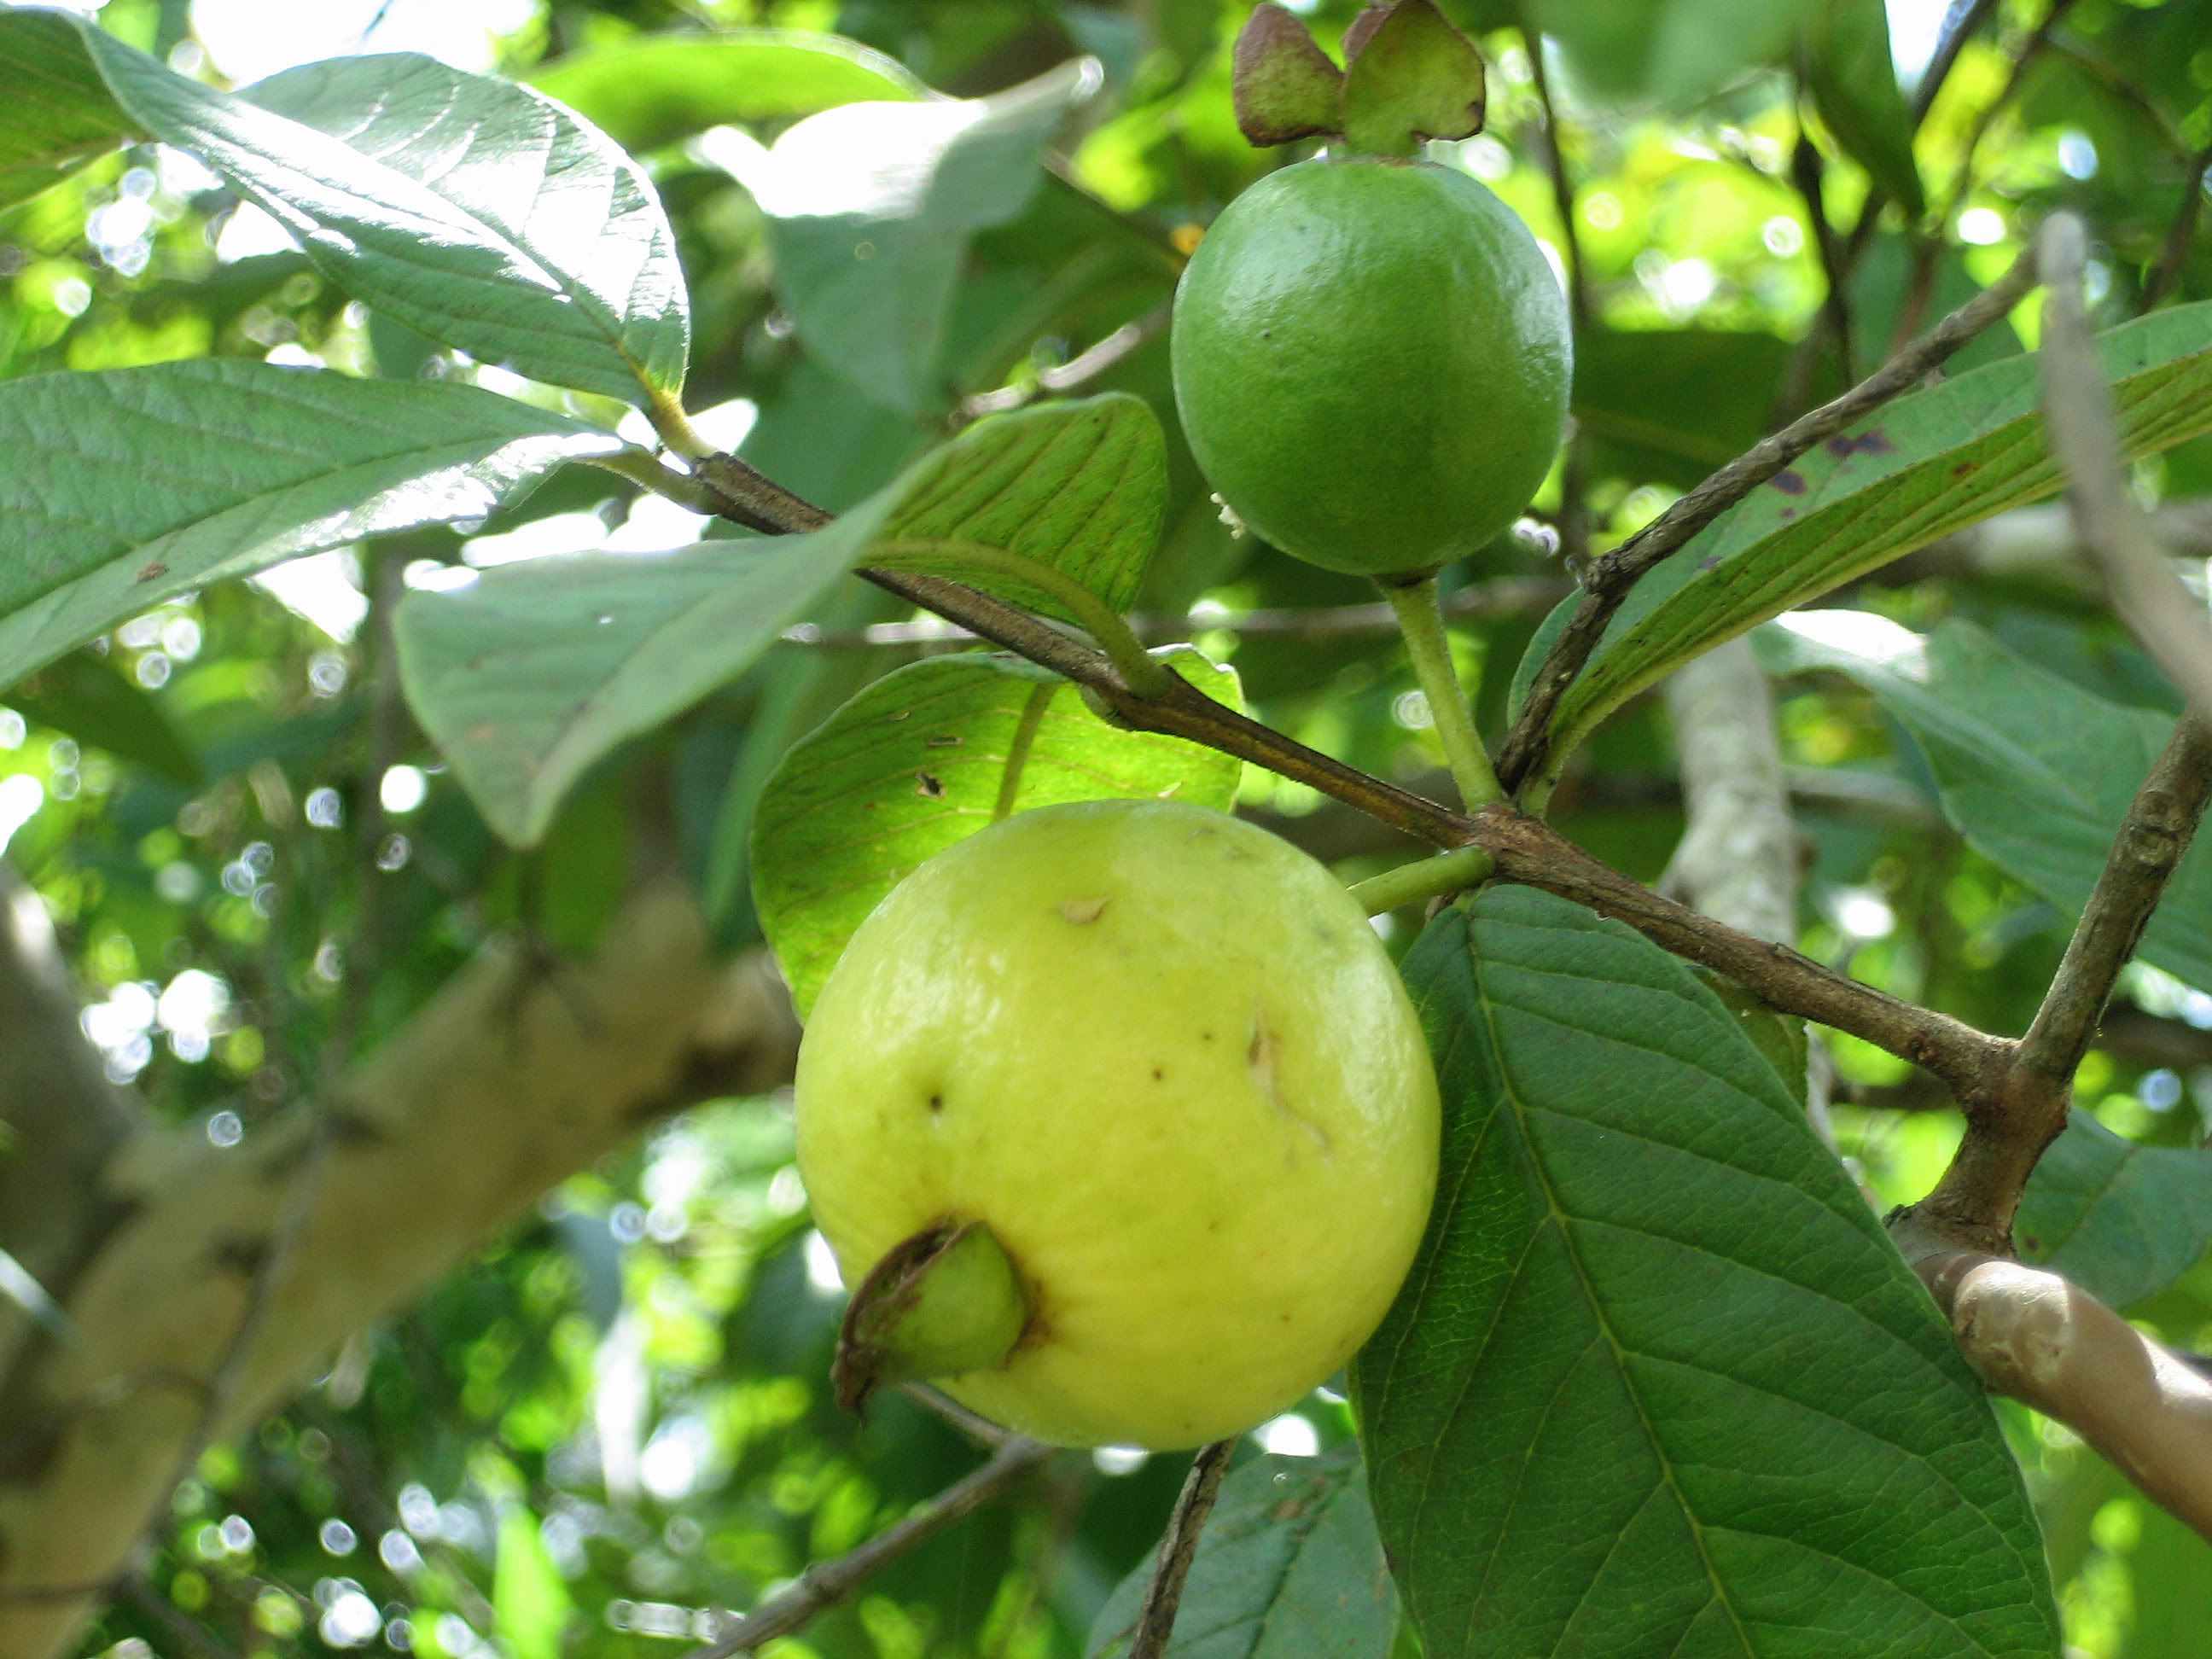 Tropical guava psidium guajava hawaii kuawa goiaba live rare fruit tropical guava psidium guajava hawaii kuawa goiaba live rare fruit tree seedling ccuart Image collections